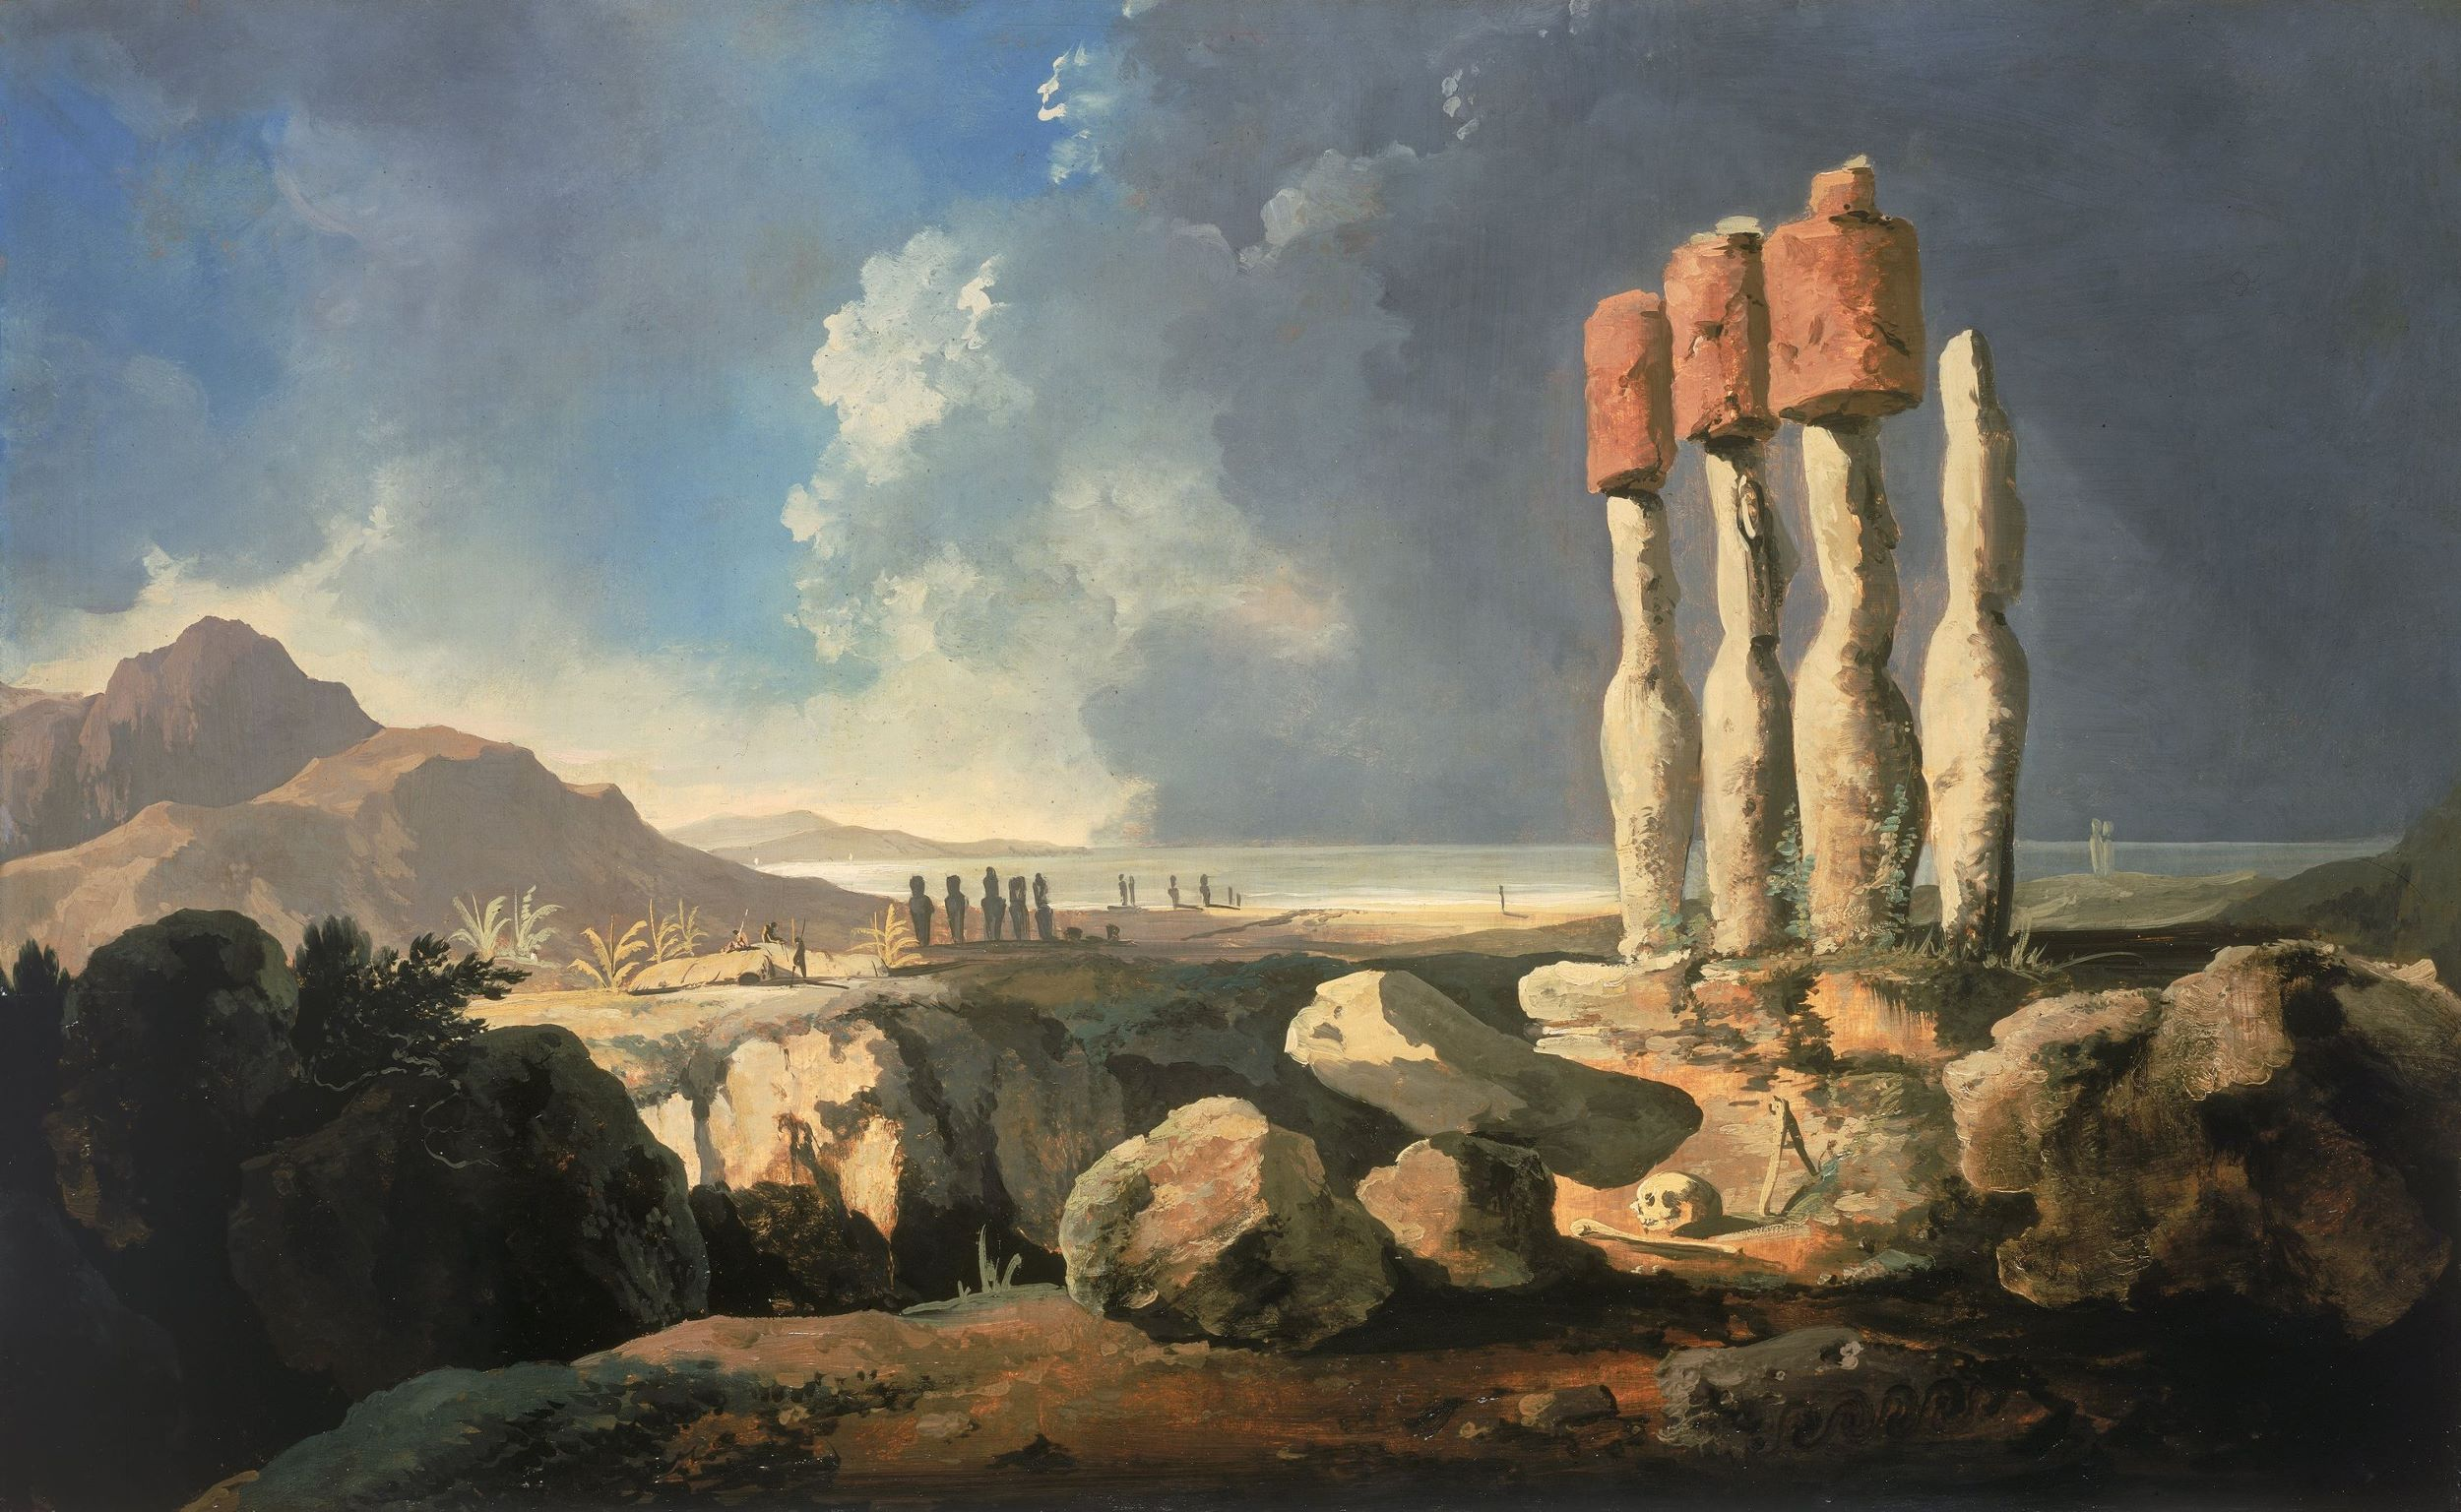 1-41-william-hodges-a-view-of-the-monuments-of-easter-island-rapanui